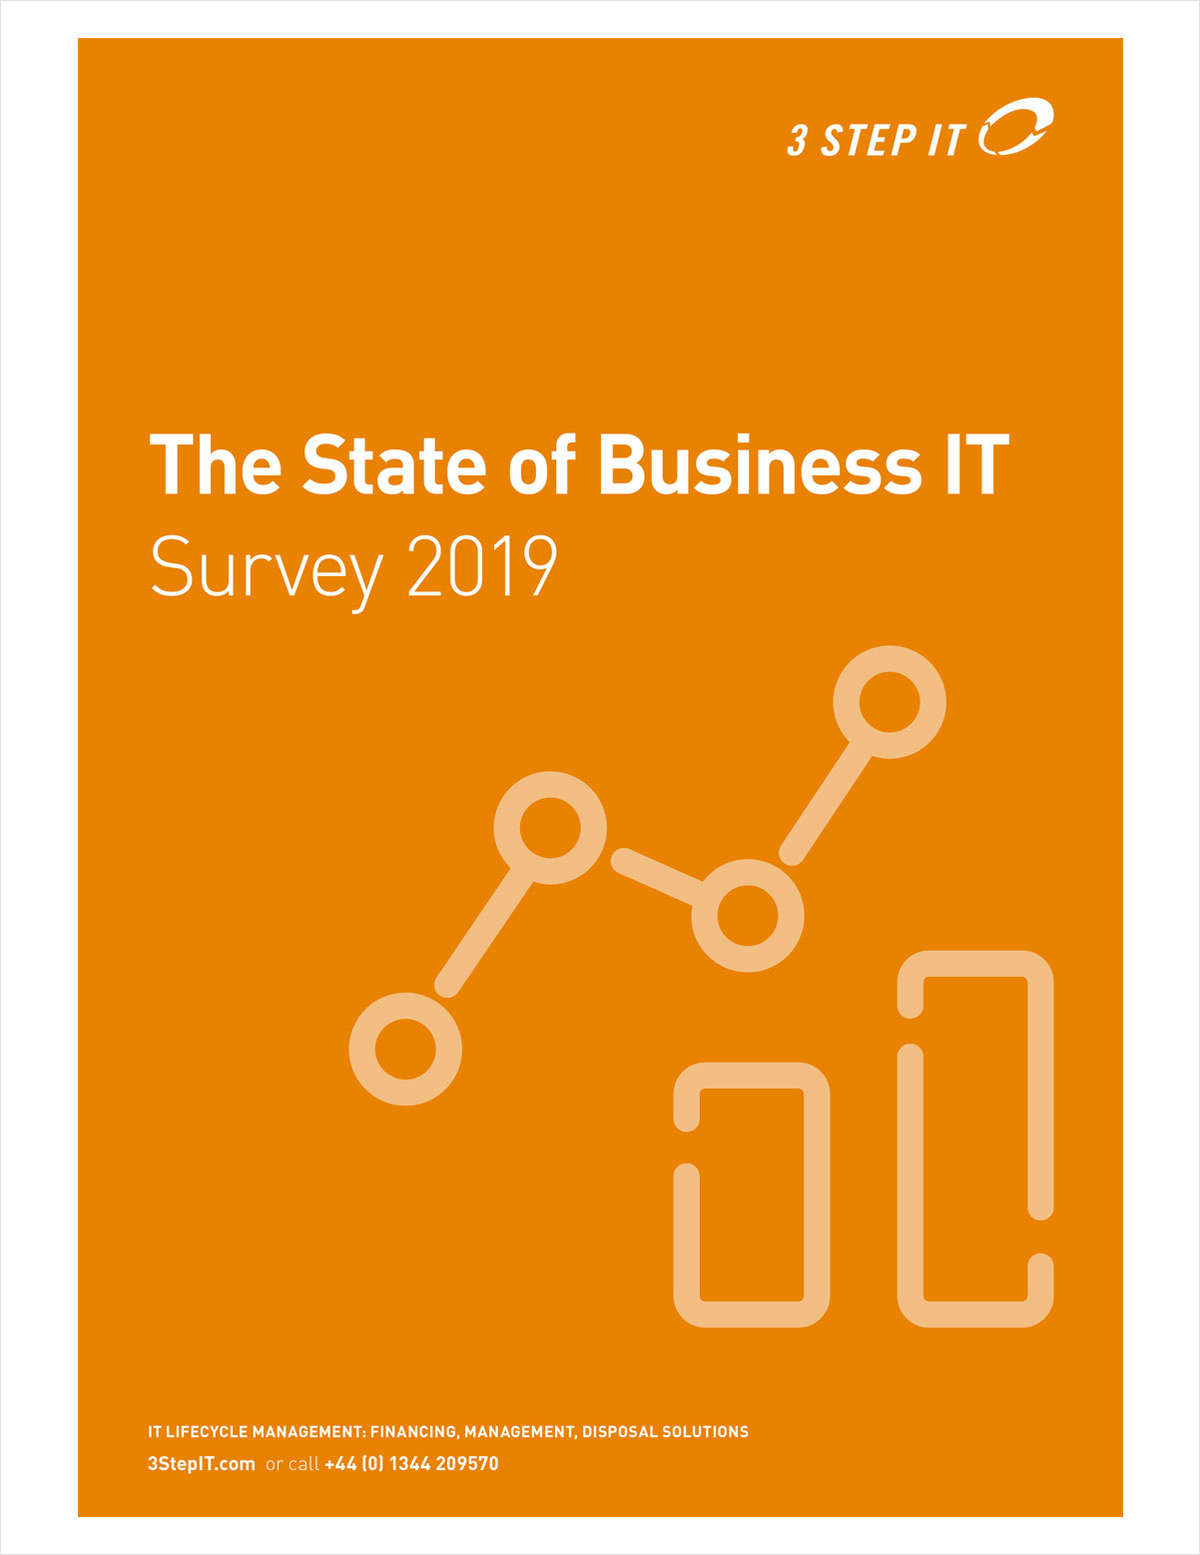 The State of Business IT Survey 2019